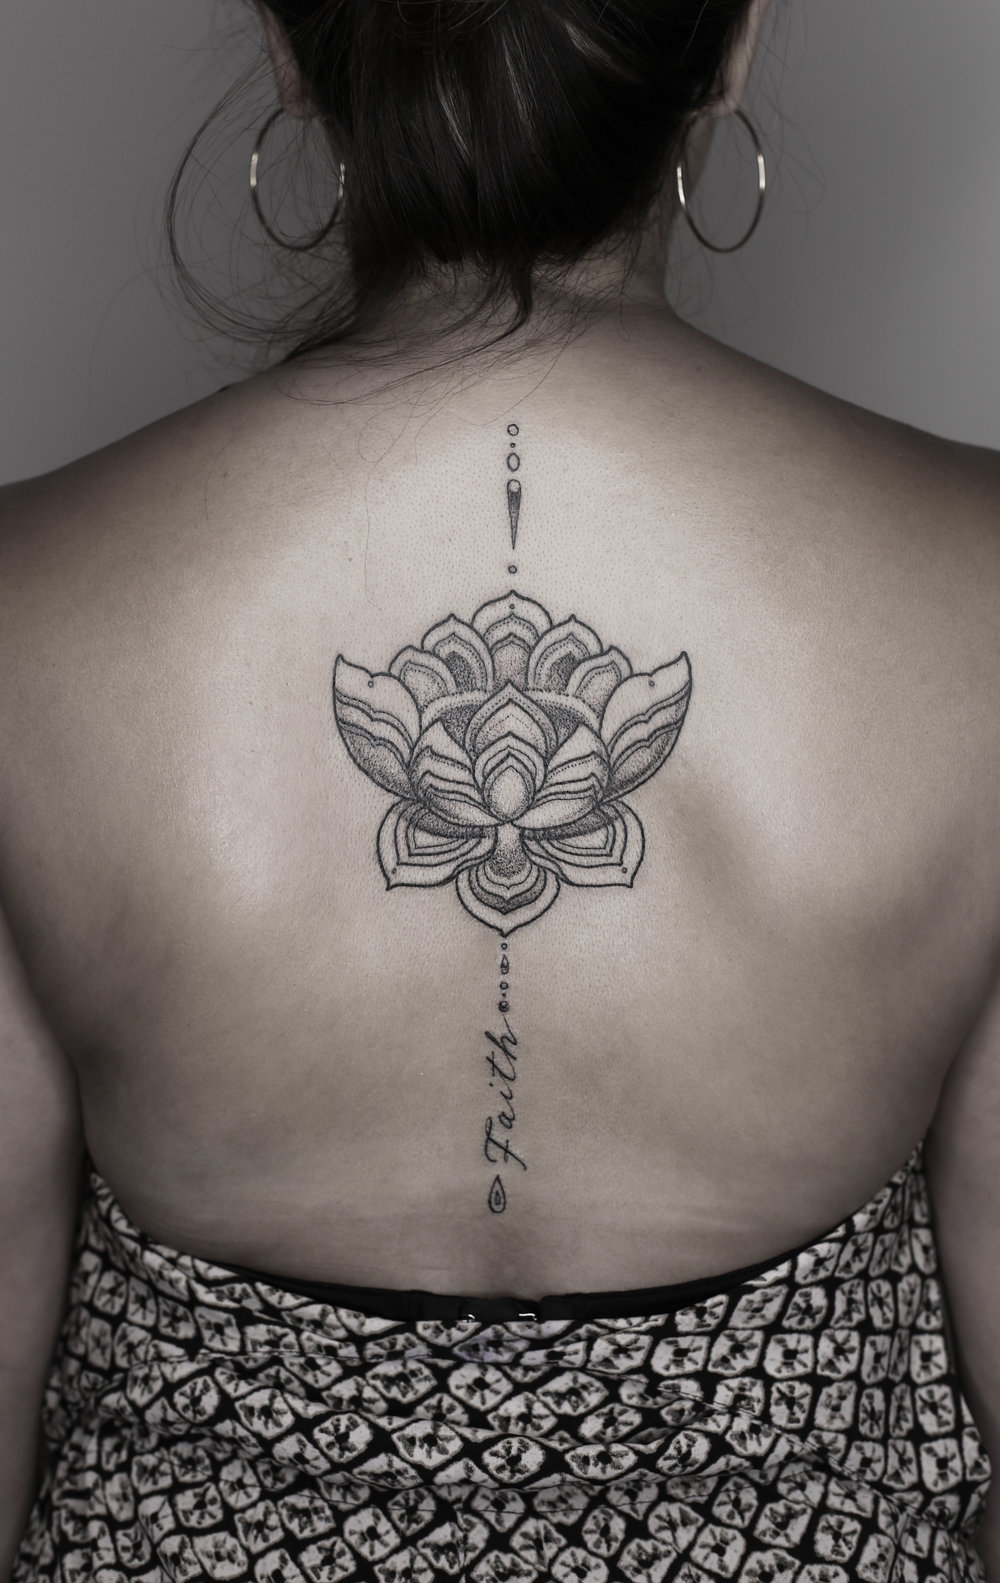 ejay tattoo singleton tattoo trinity groves dallas texas best artist tattoo ink oak cliff lotus pretty .jpg